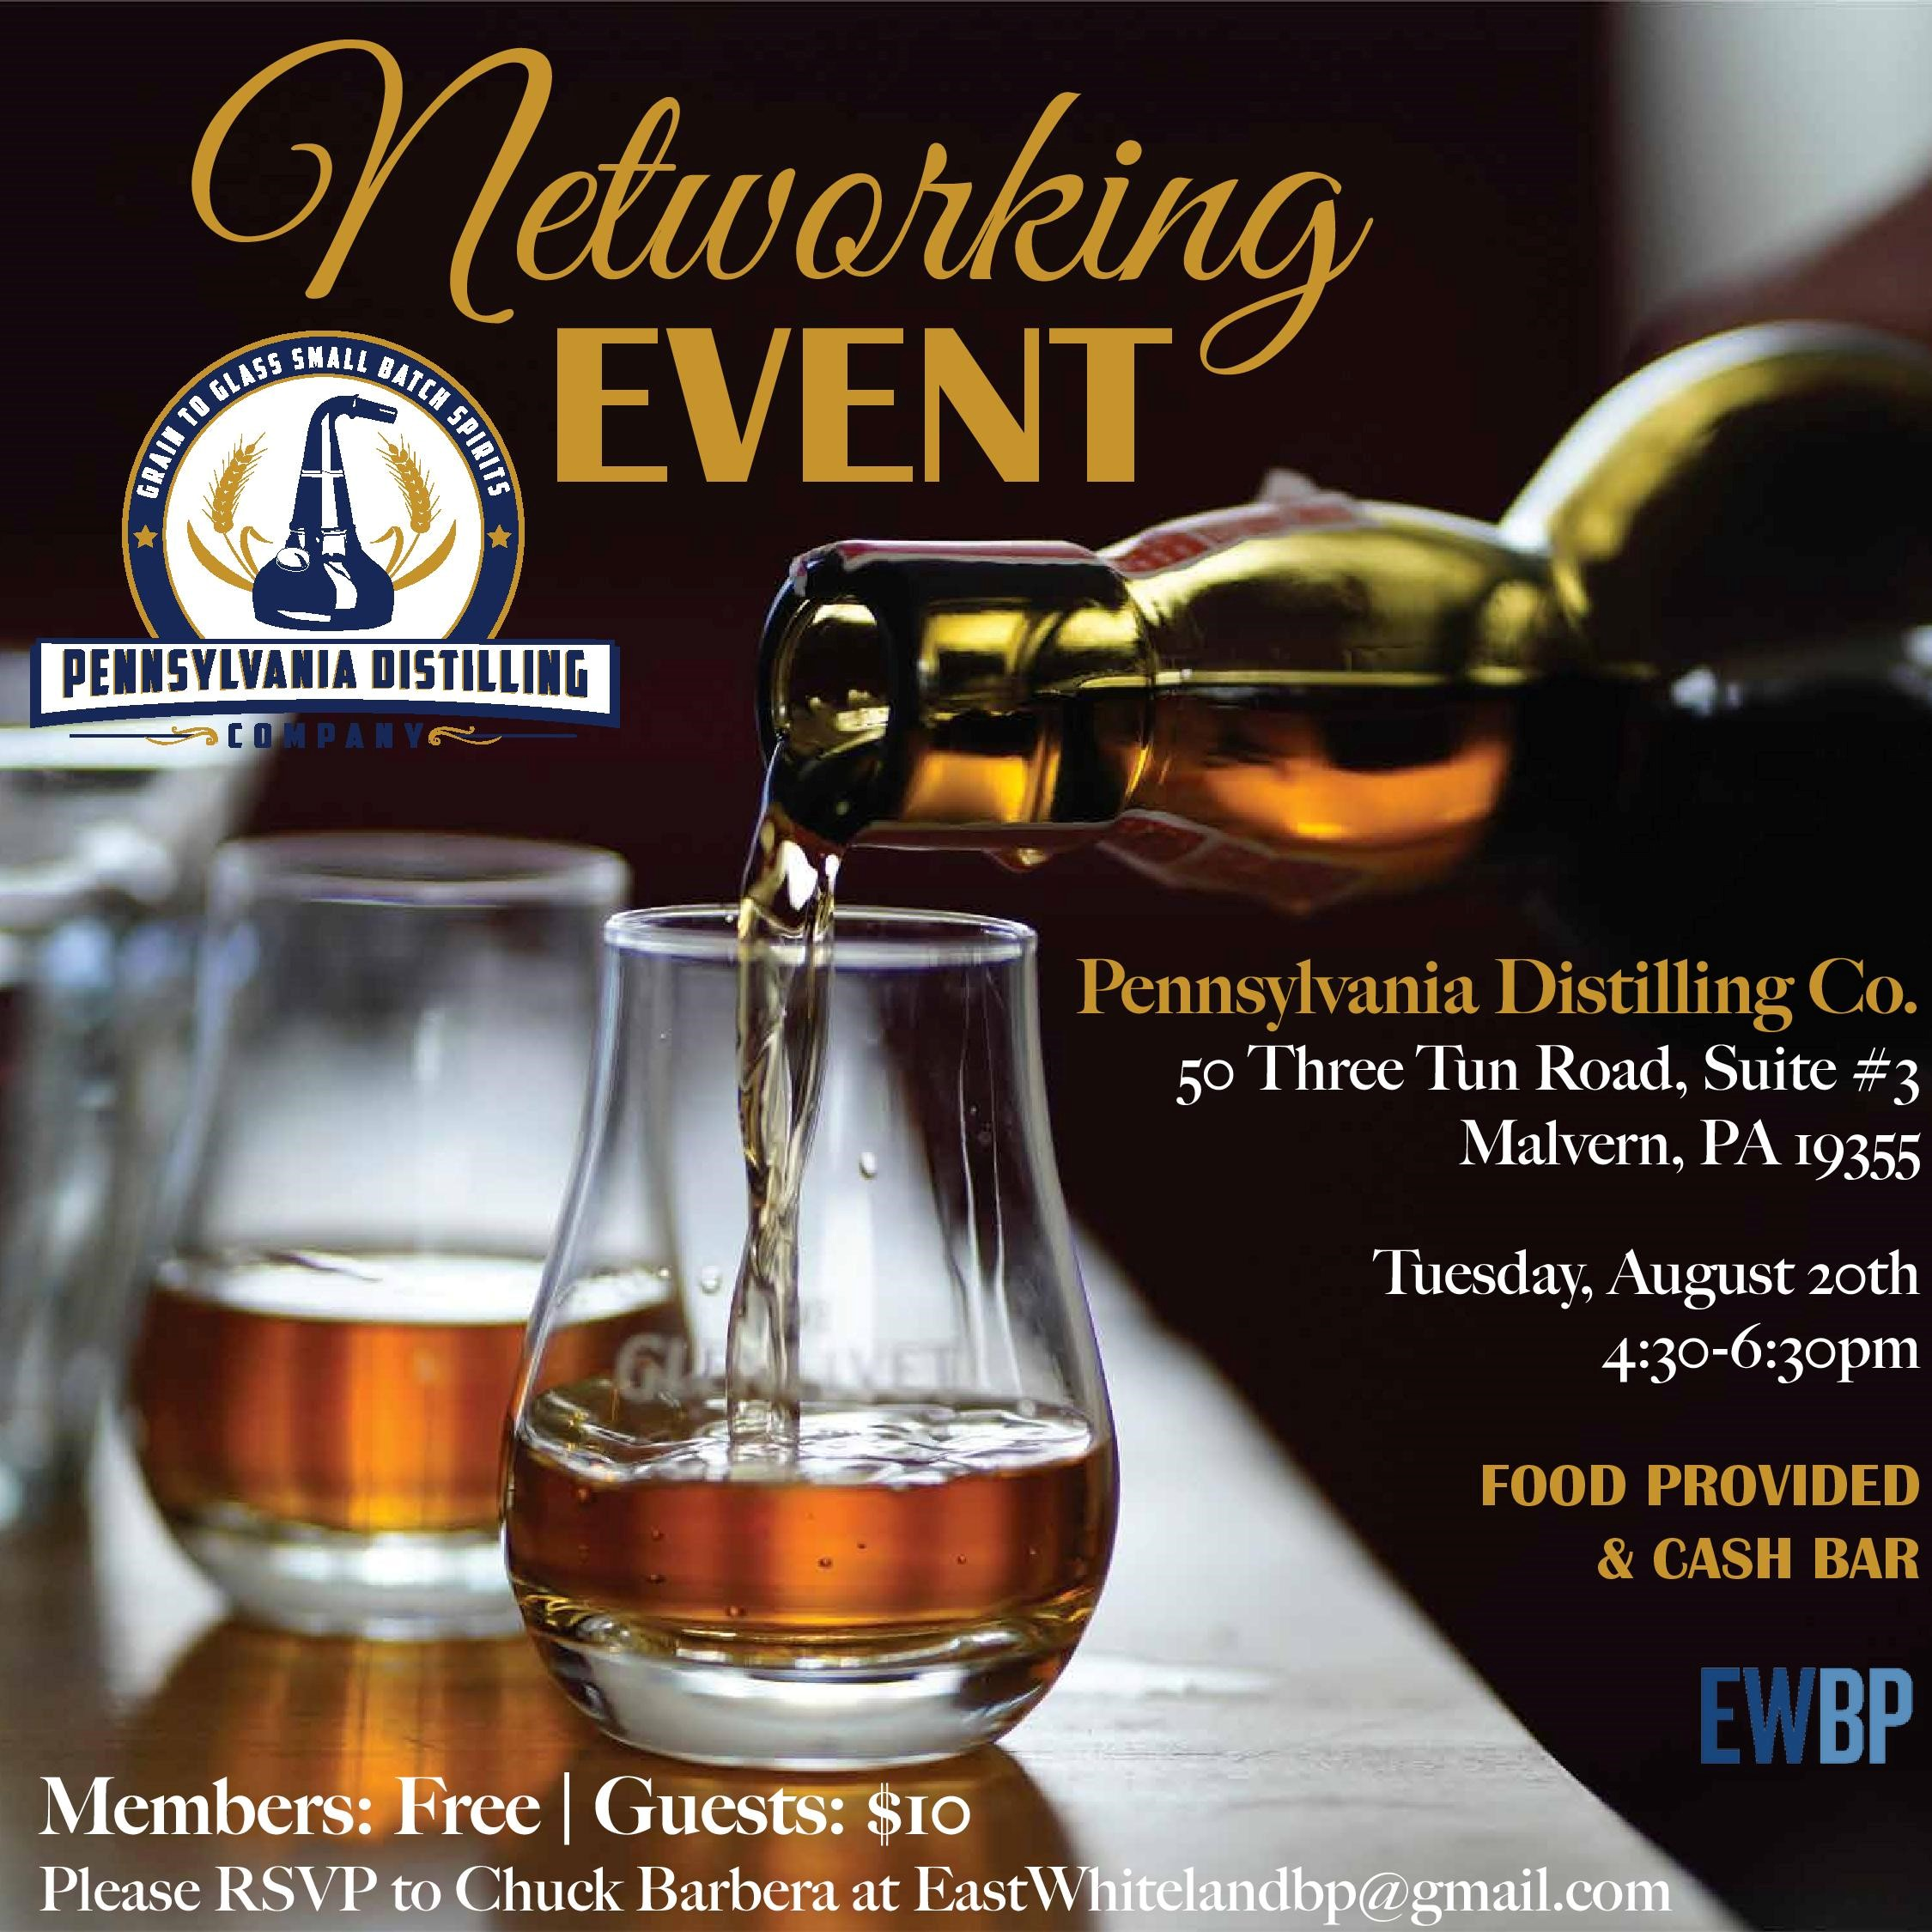 - Join us for networking over a great cocktail!